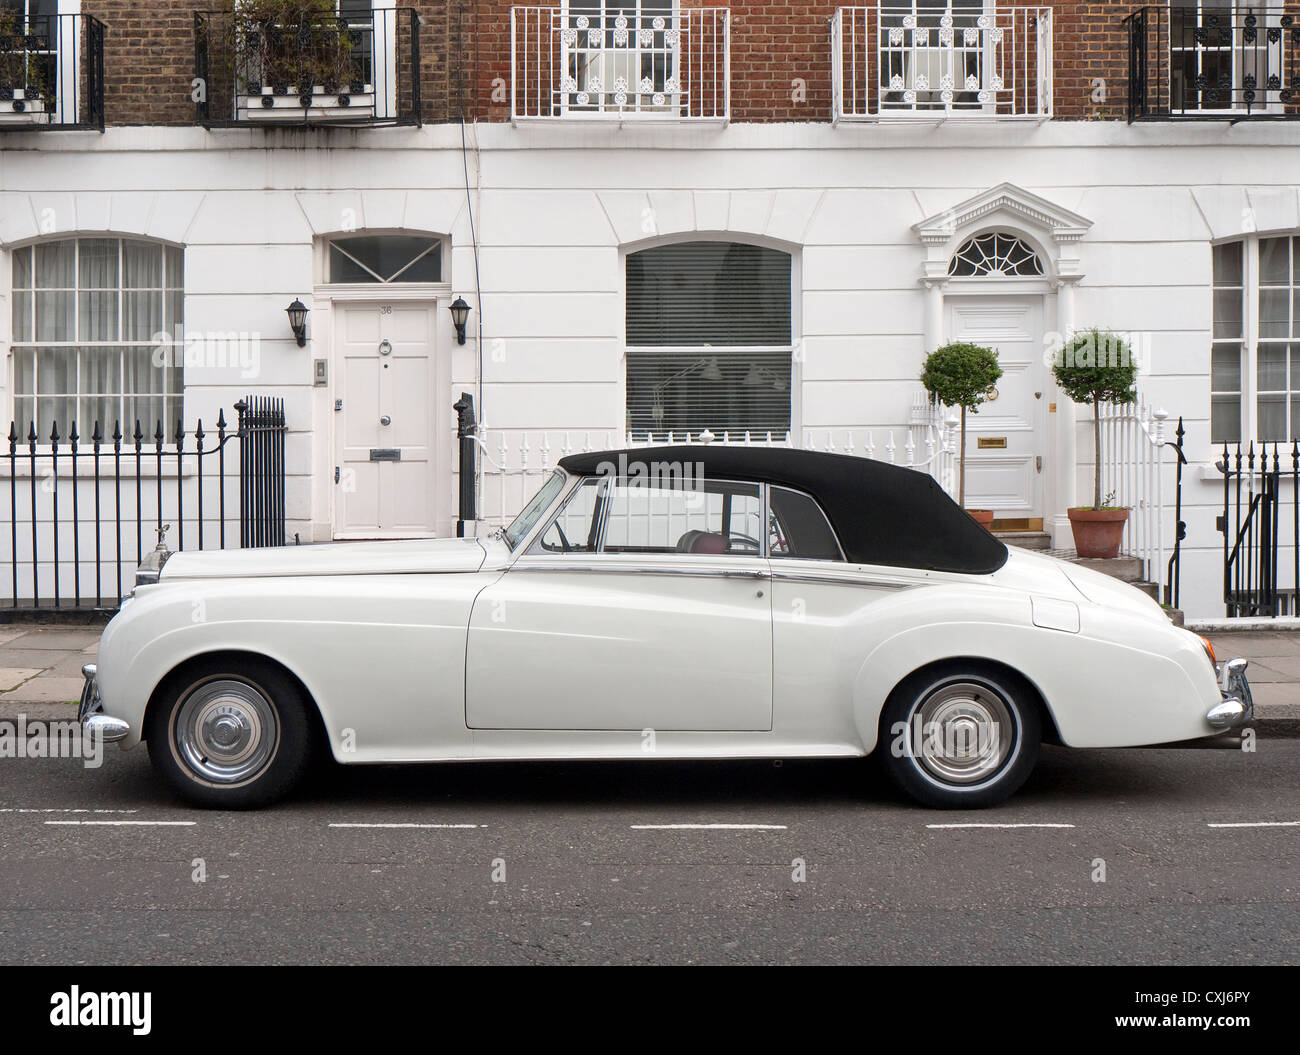 White Rolls Royce High Resolution Stock Photography And Images Alamy